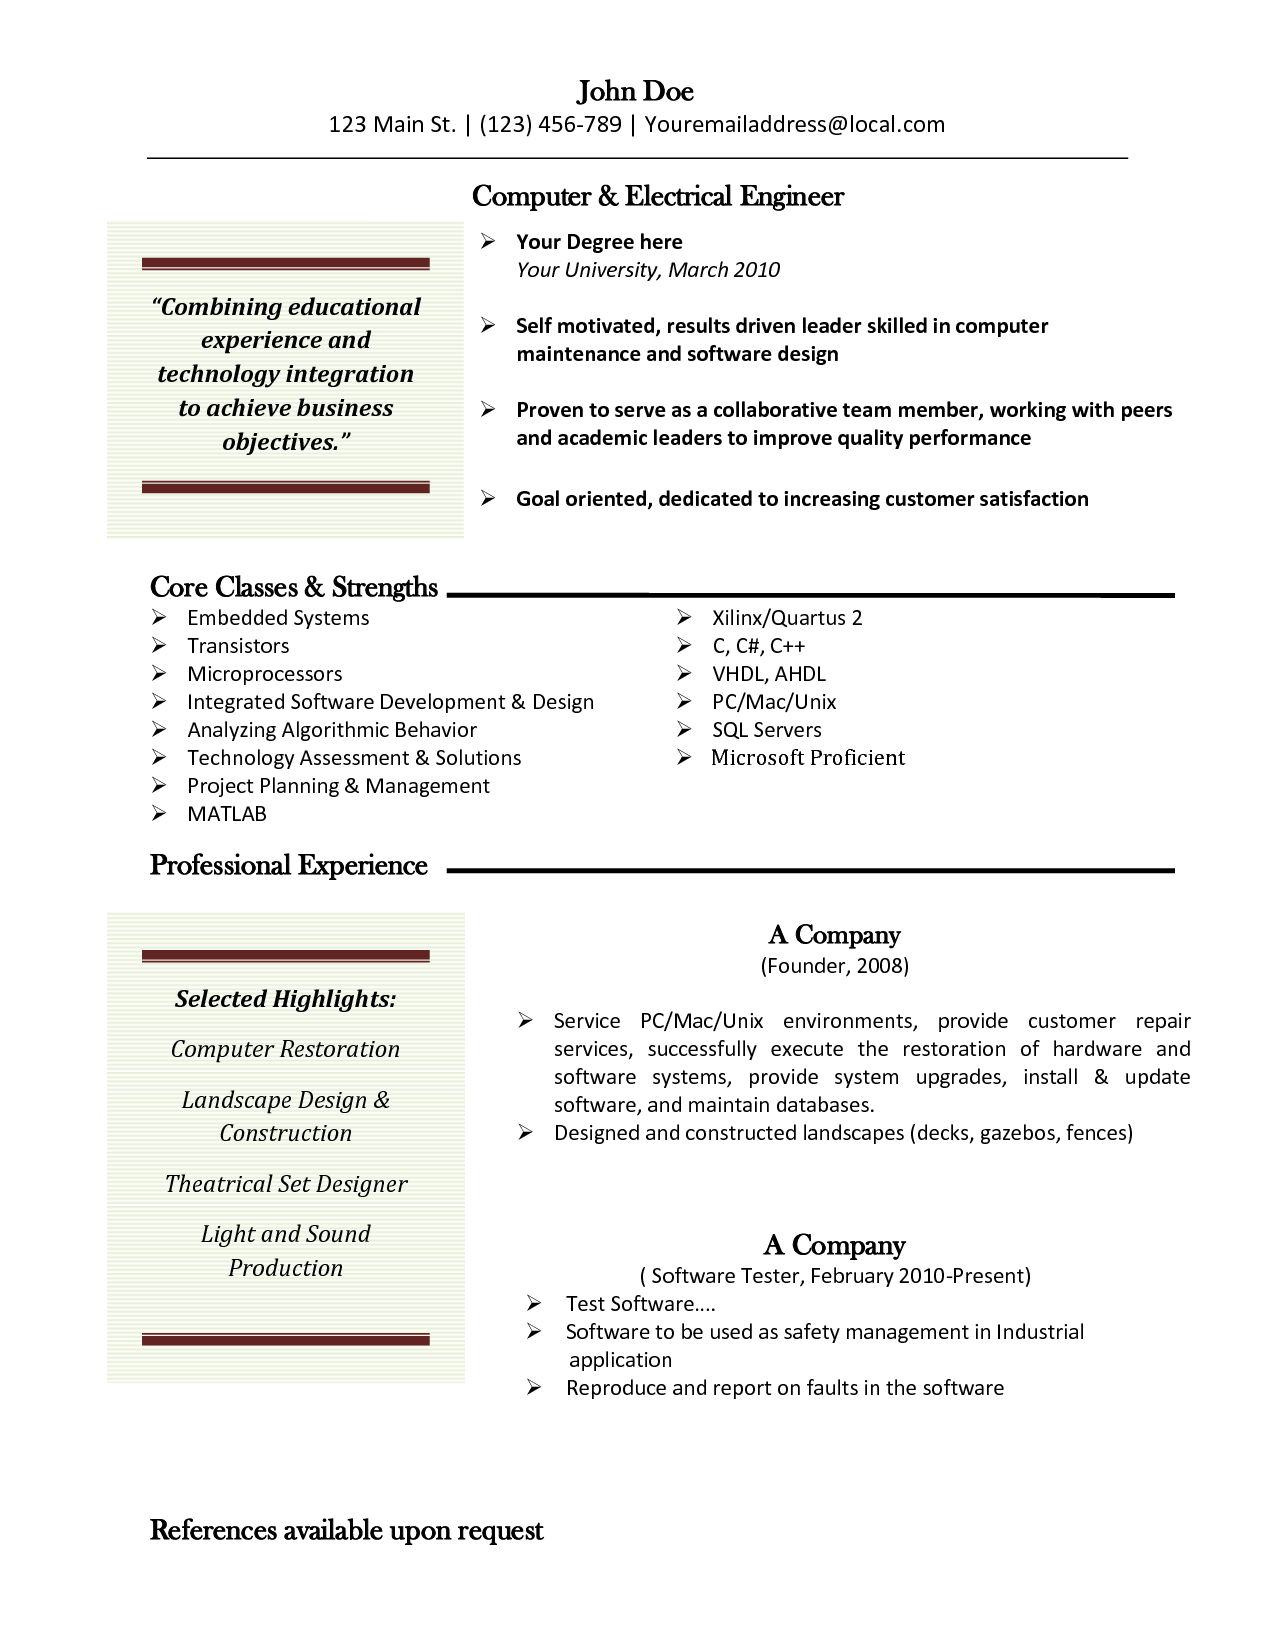 Free Resume Templates For Pages Adorable Freeresumetemplatesformaccqjykibi 1275×1650  Cv